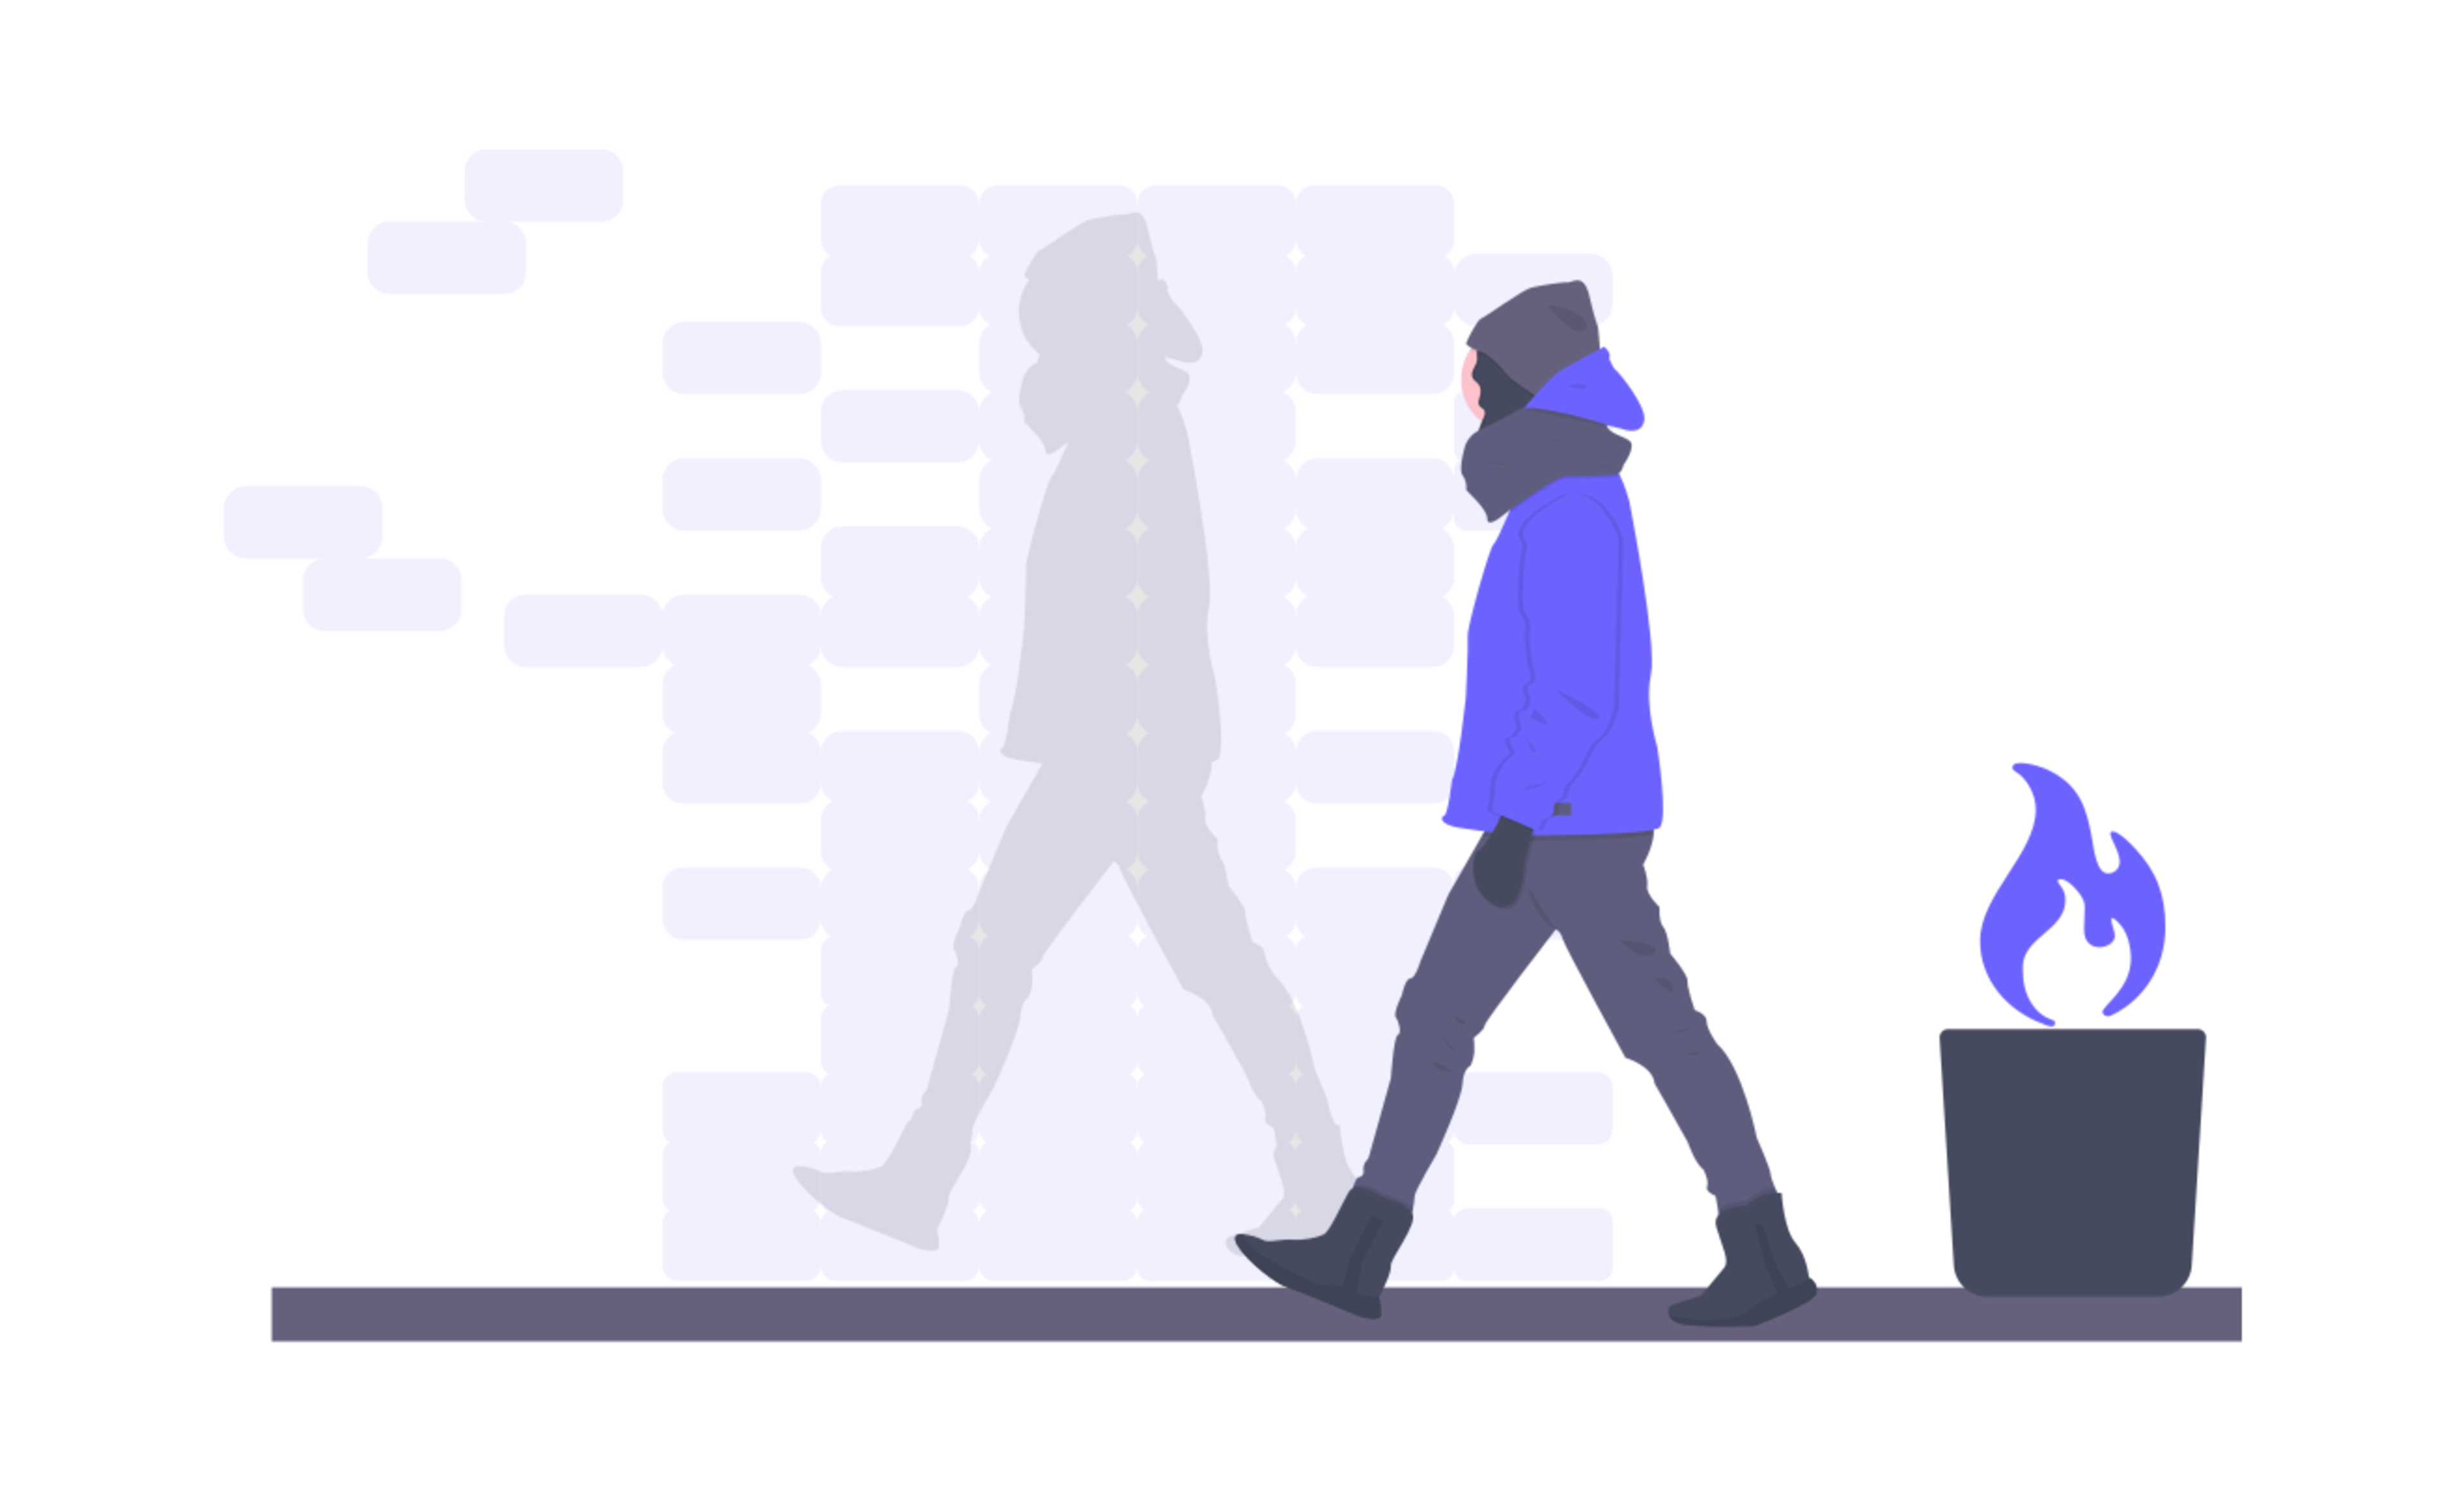 Illustration of a person walking by themselves